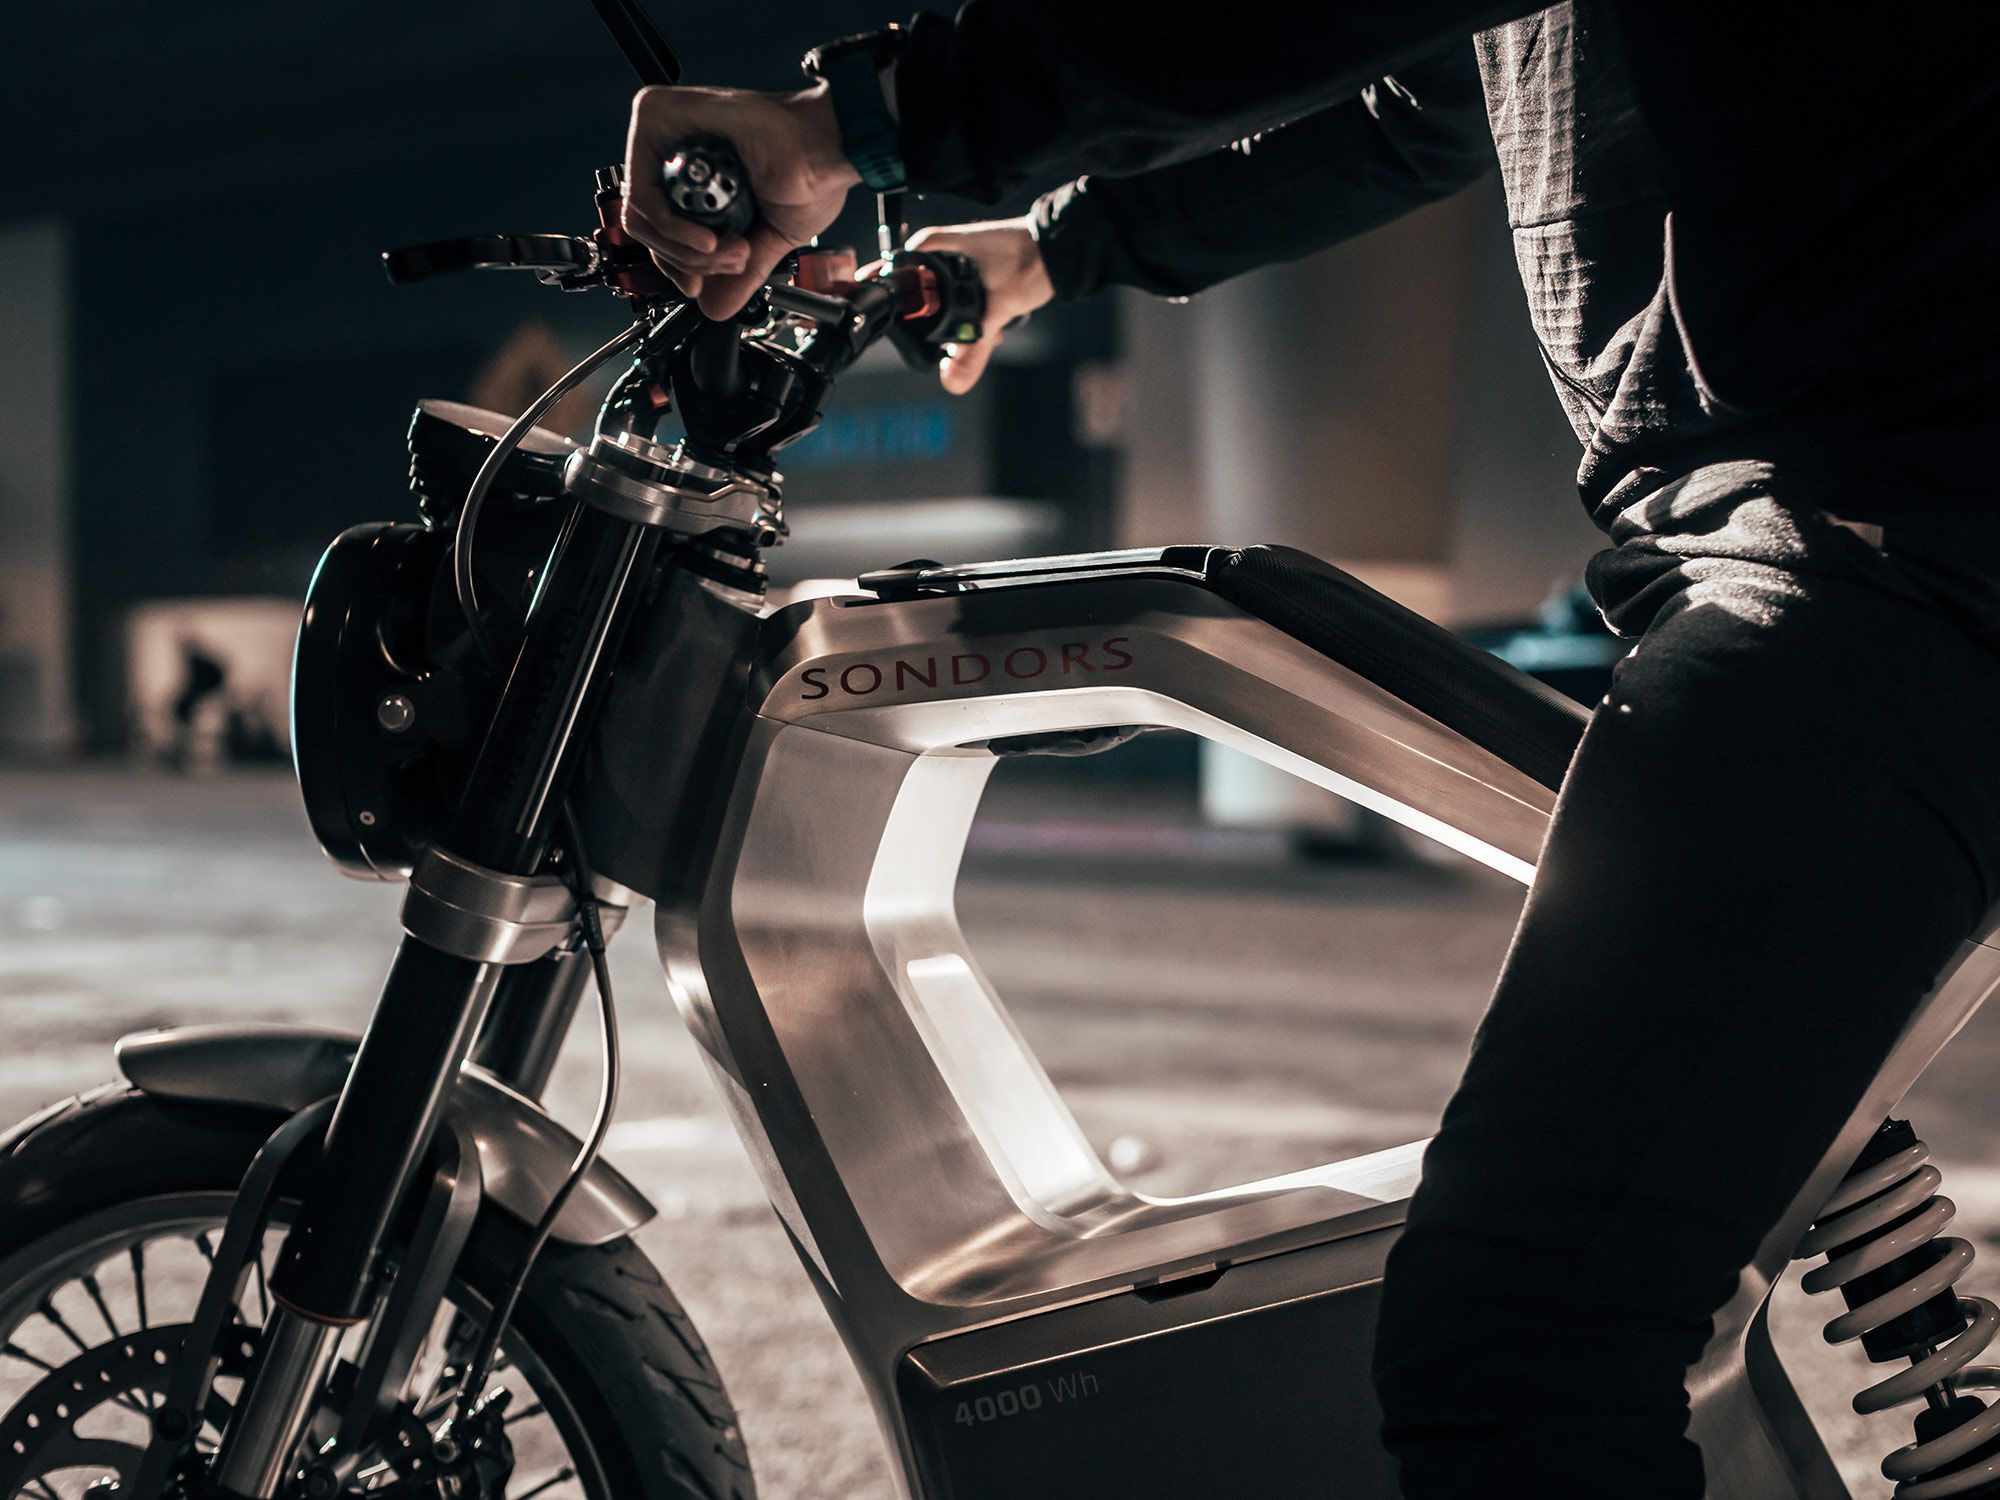 2021 Sondors Metacycle Electric Motorcycle First Look Photo Gallery